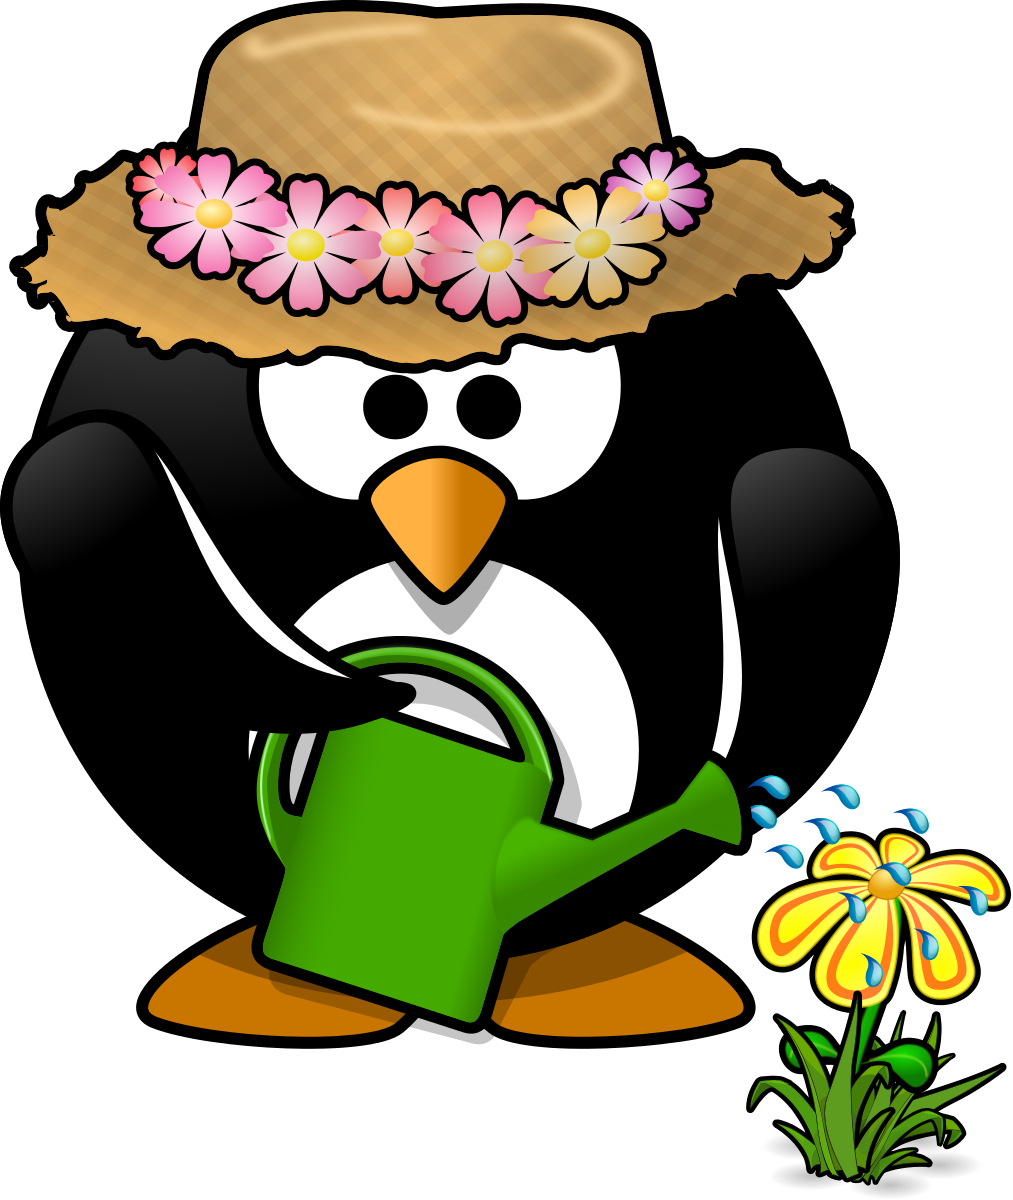 Garden Penguin Clipart by Moini : Flower Cliparts #8372- ClipartSE